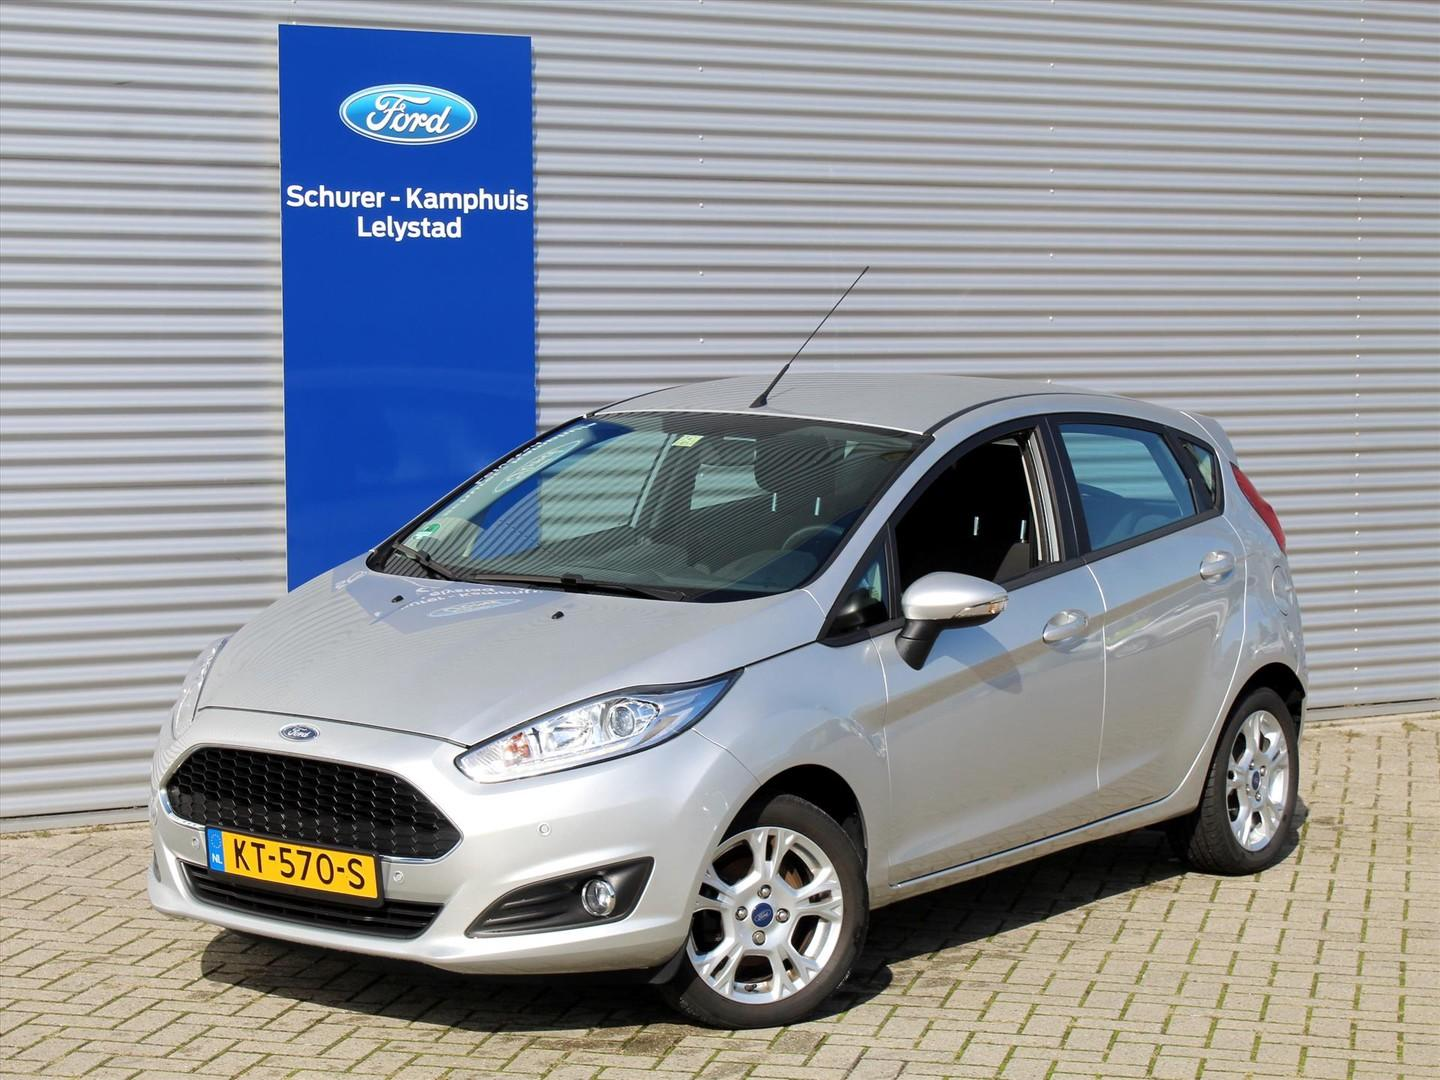 Ford Fiesta 1.0 (80pk) 5-drs style ultimate